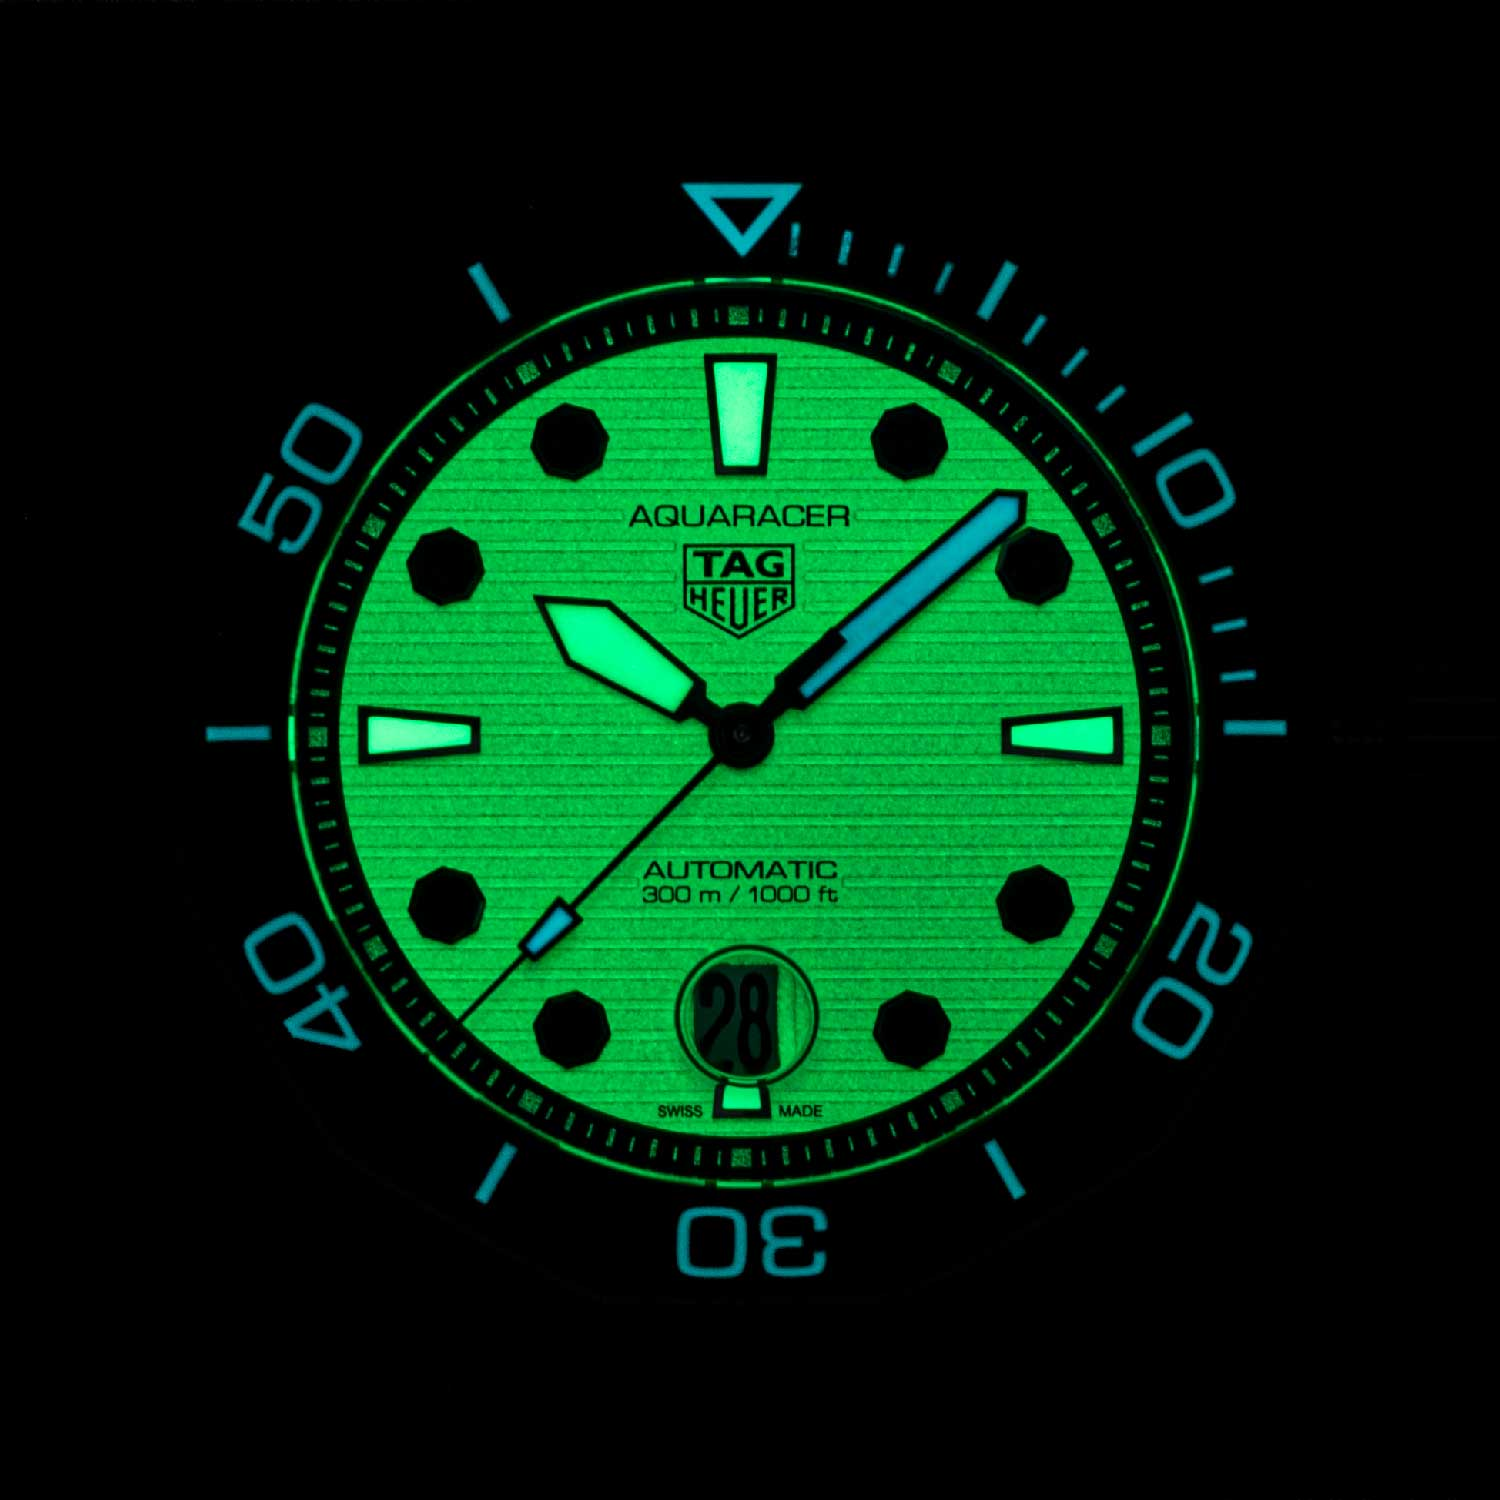 The hour hand and octagonal hour markers at 12, 3, 6 and 9 o'clock are filled with green lume, and the remaining octagonal hour markers are all edged with black lacquer. (© Revolution)